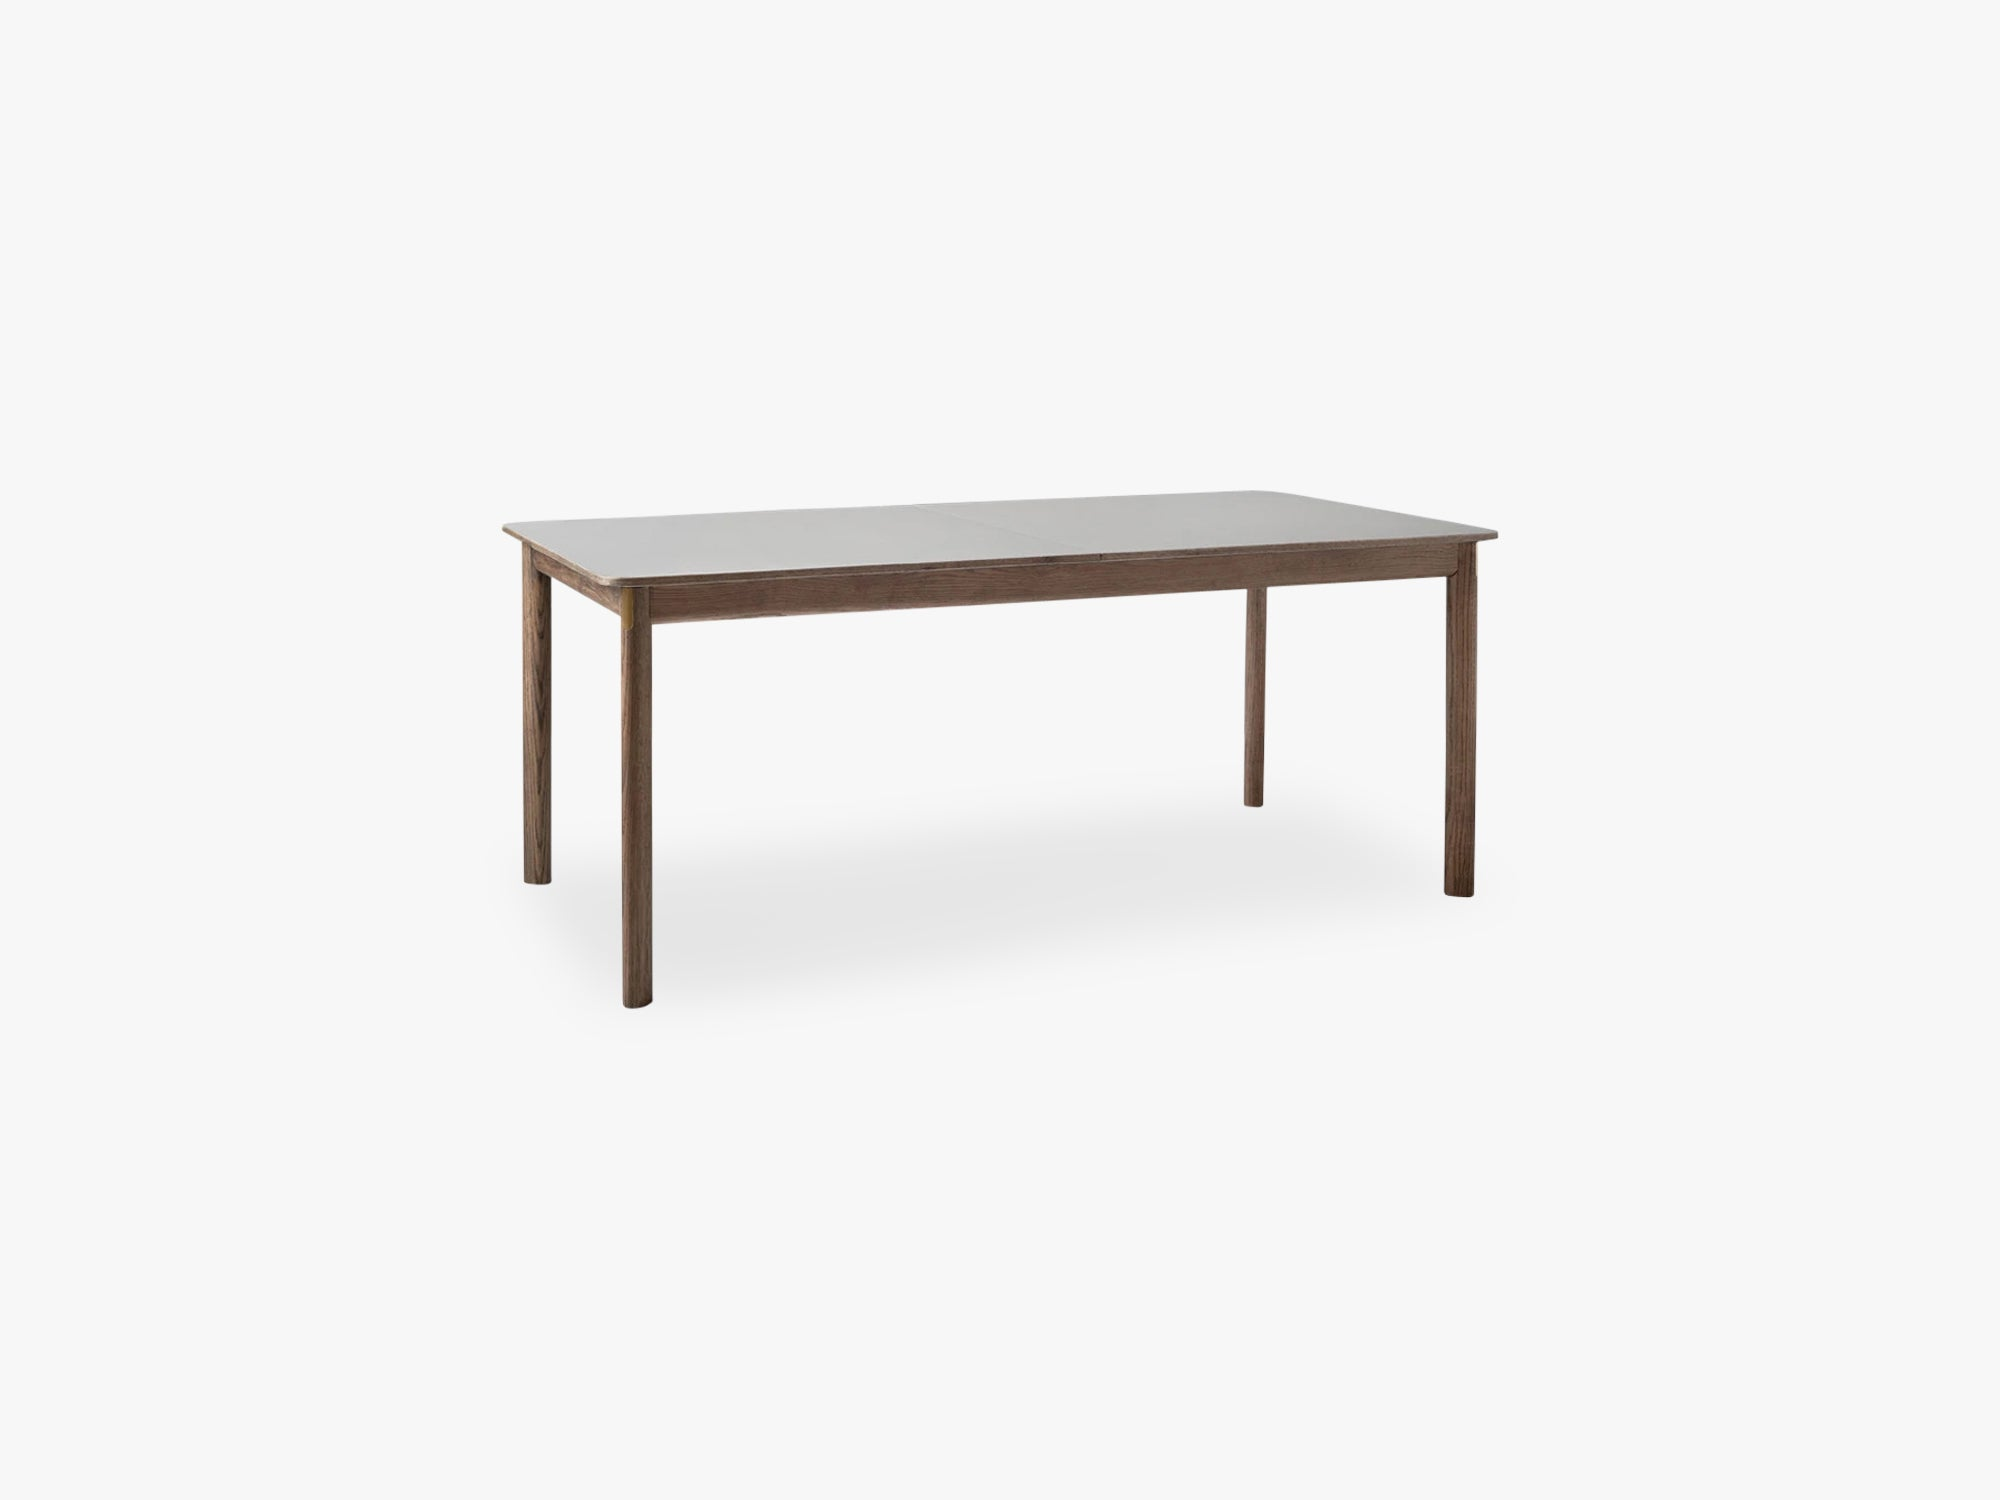 Patch Table HW1, Nano laminate Fenix Giogio Londra 0718/ Smoked Oak/ Brass fittings fra &tradition